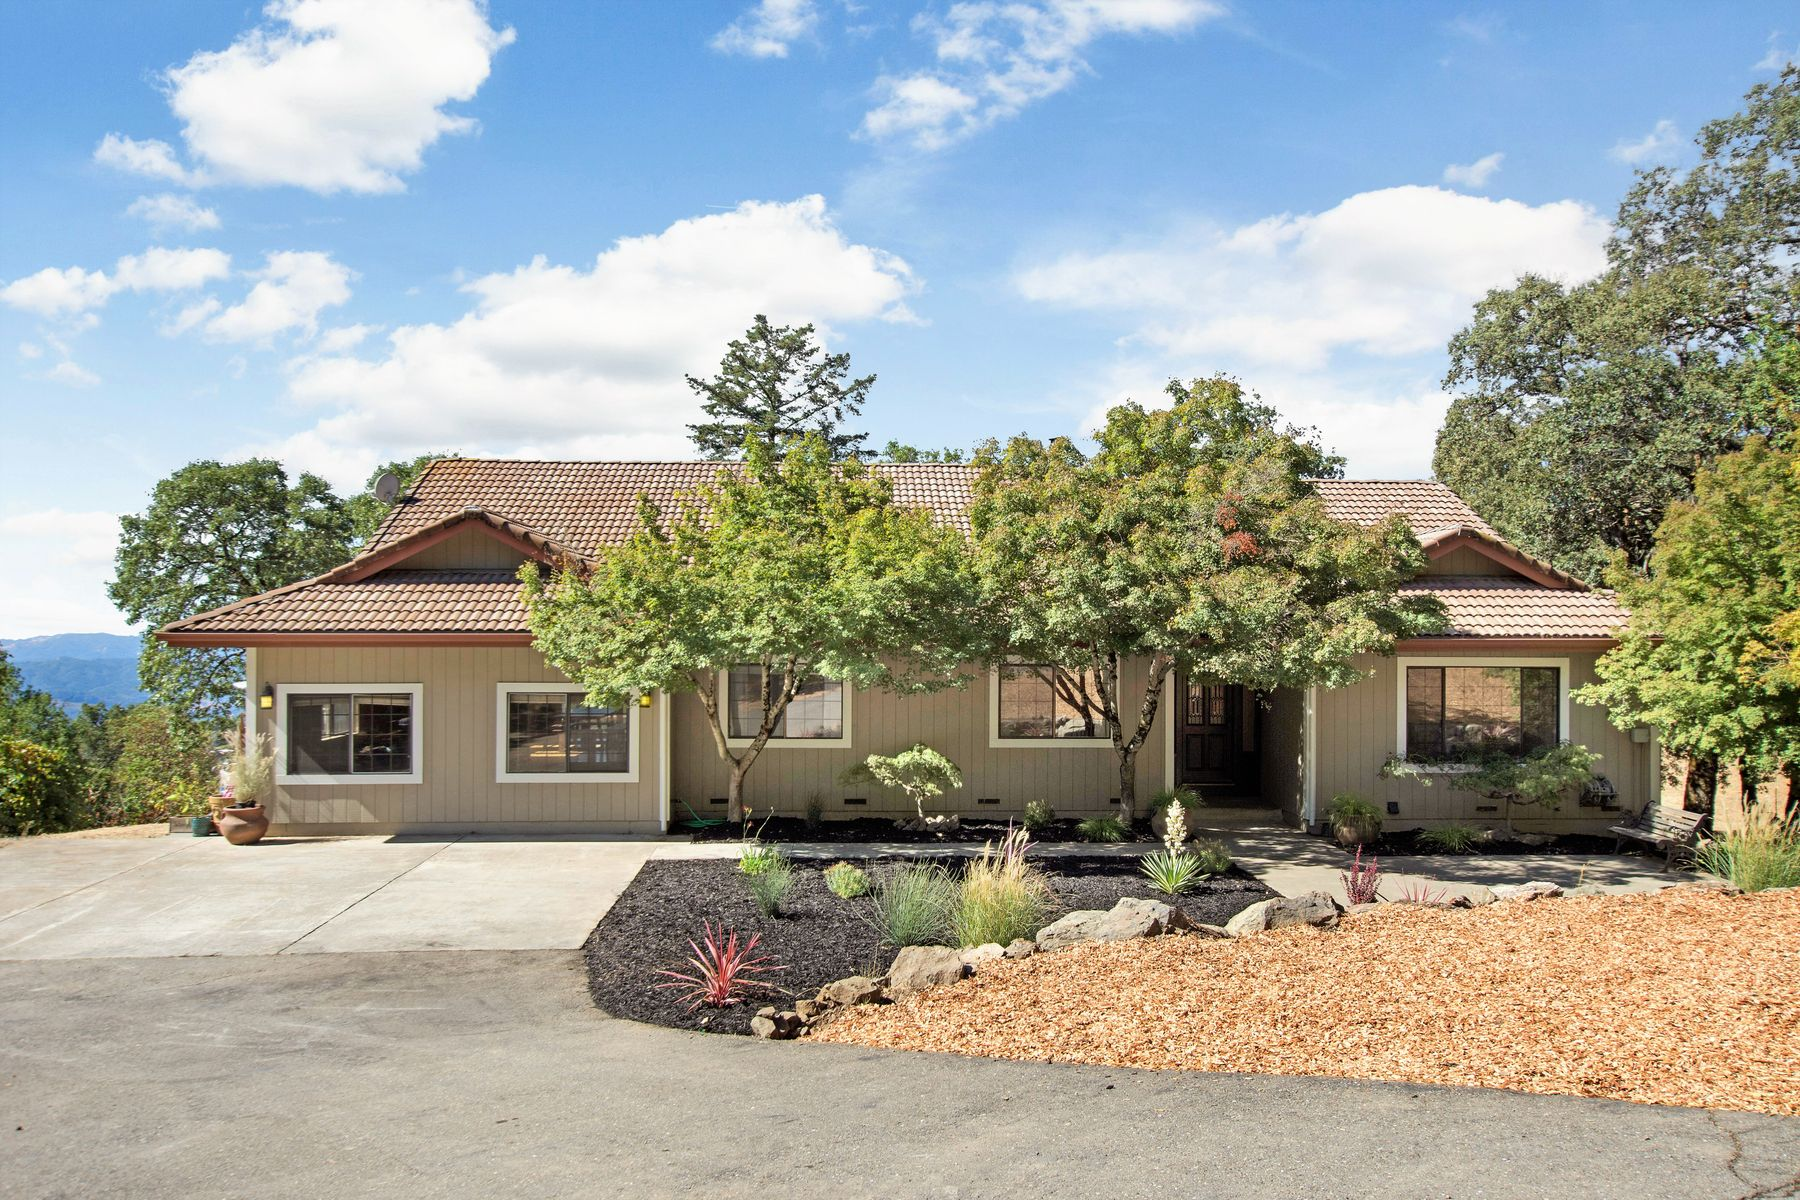 Single Family Homes for Sale at Remodeled Custom Home on 44± Acres 32000 Green Rd Cloverdale, California 95425 United States